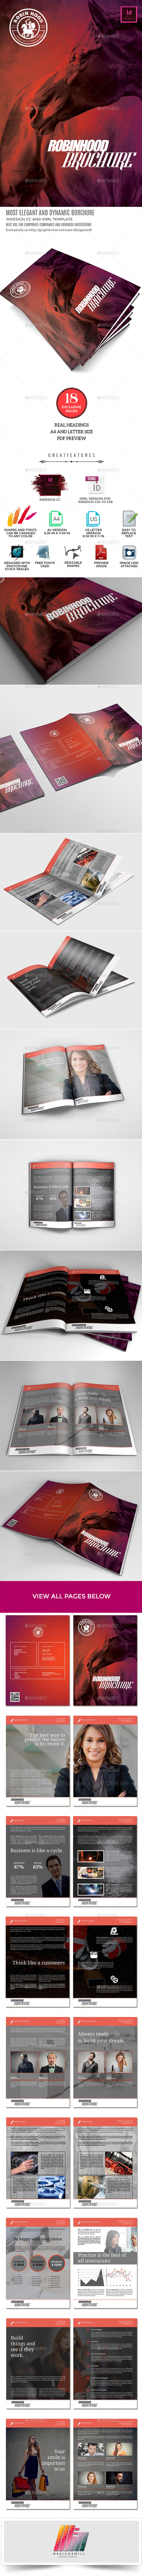 GraphicRiver Robinhood Multipurpose Brochure Template 10311756